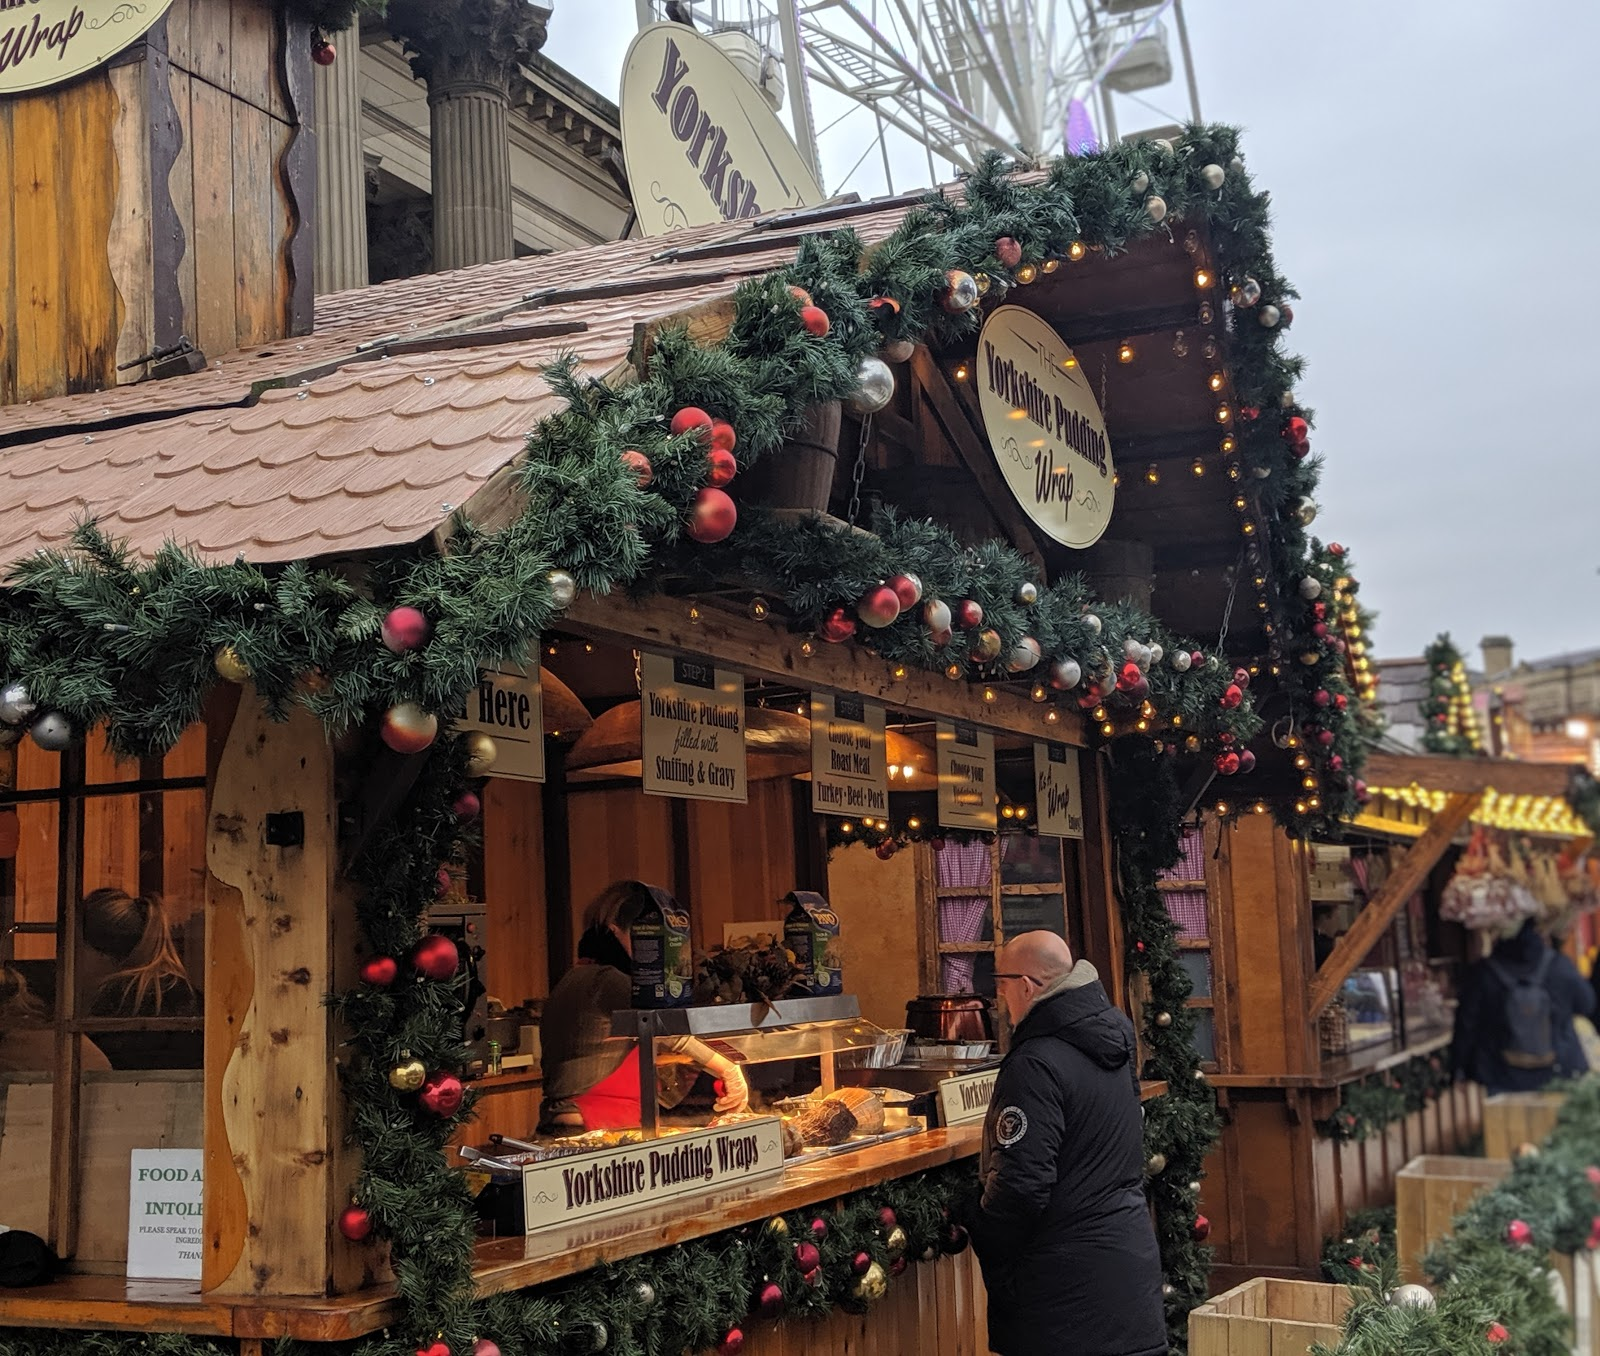 A Guide to Visiting Liverpool Christmas Markets & Lights  - yorkshire pudding wraps